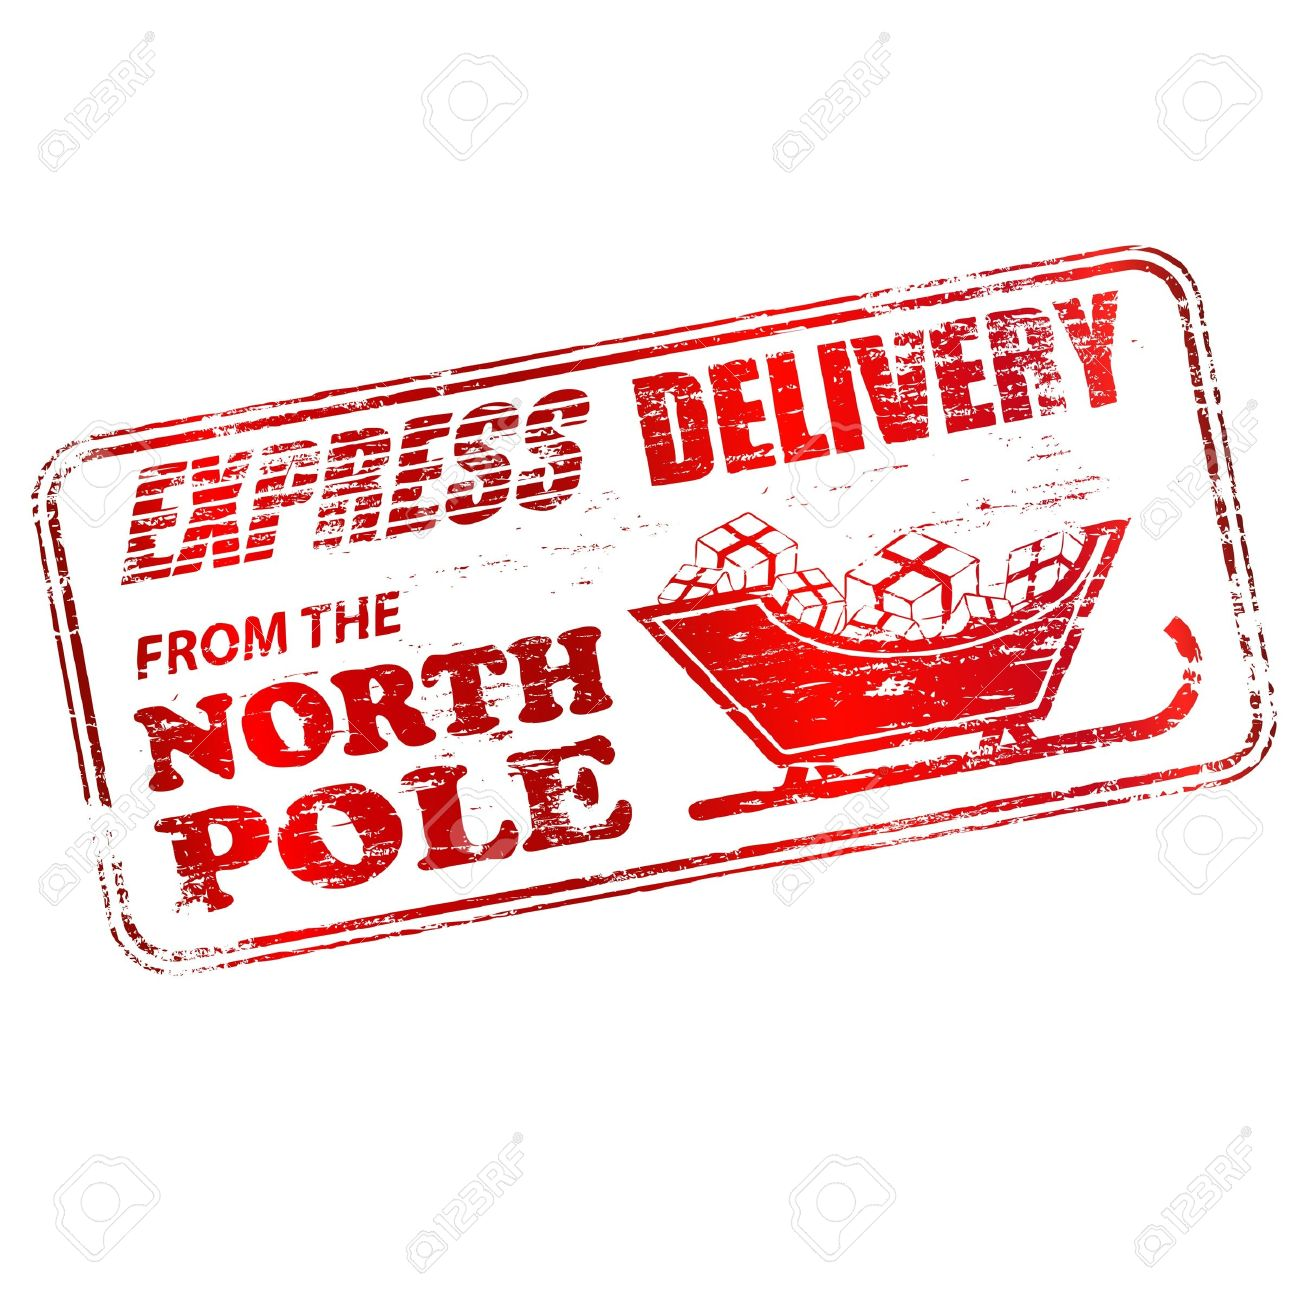 Express Delivery From The North Pole Rubber Stamp Illustration Stock Vector